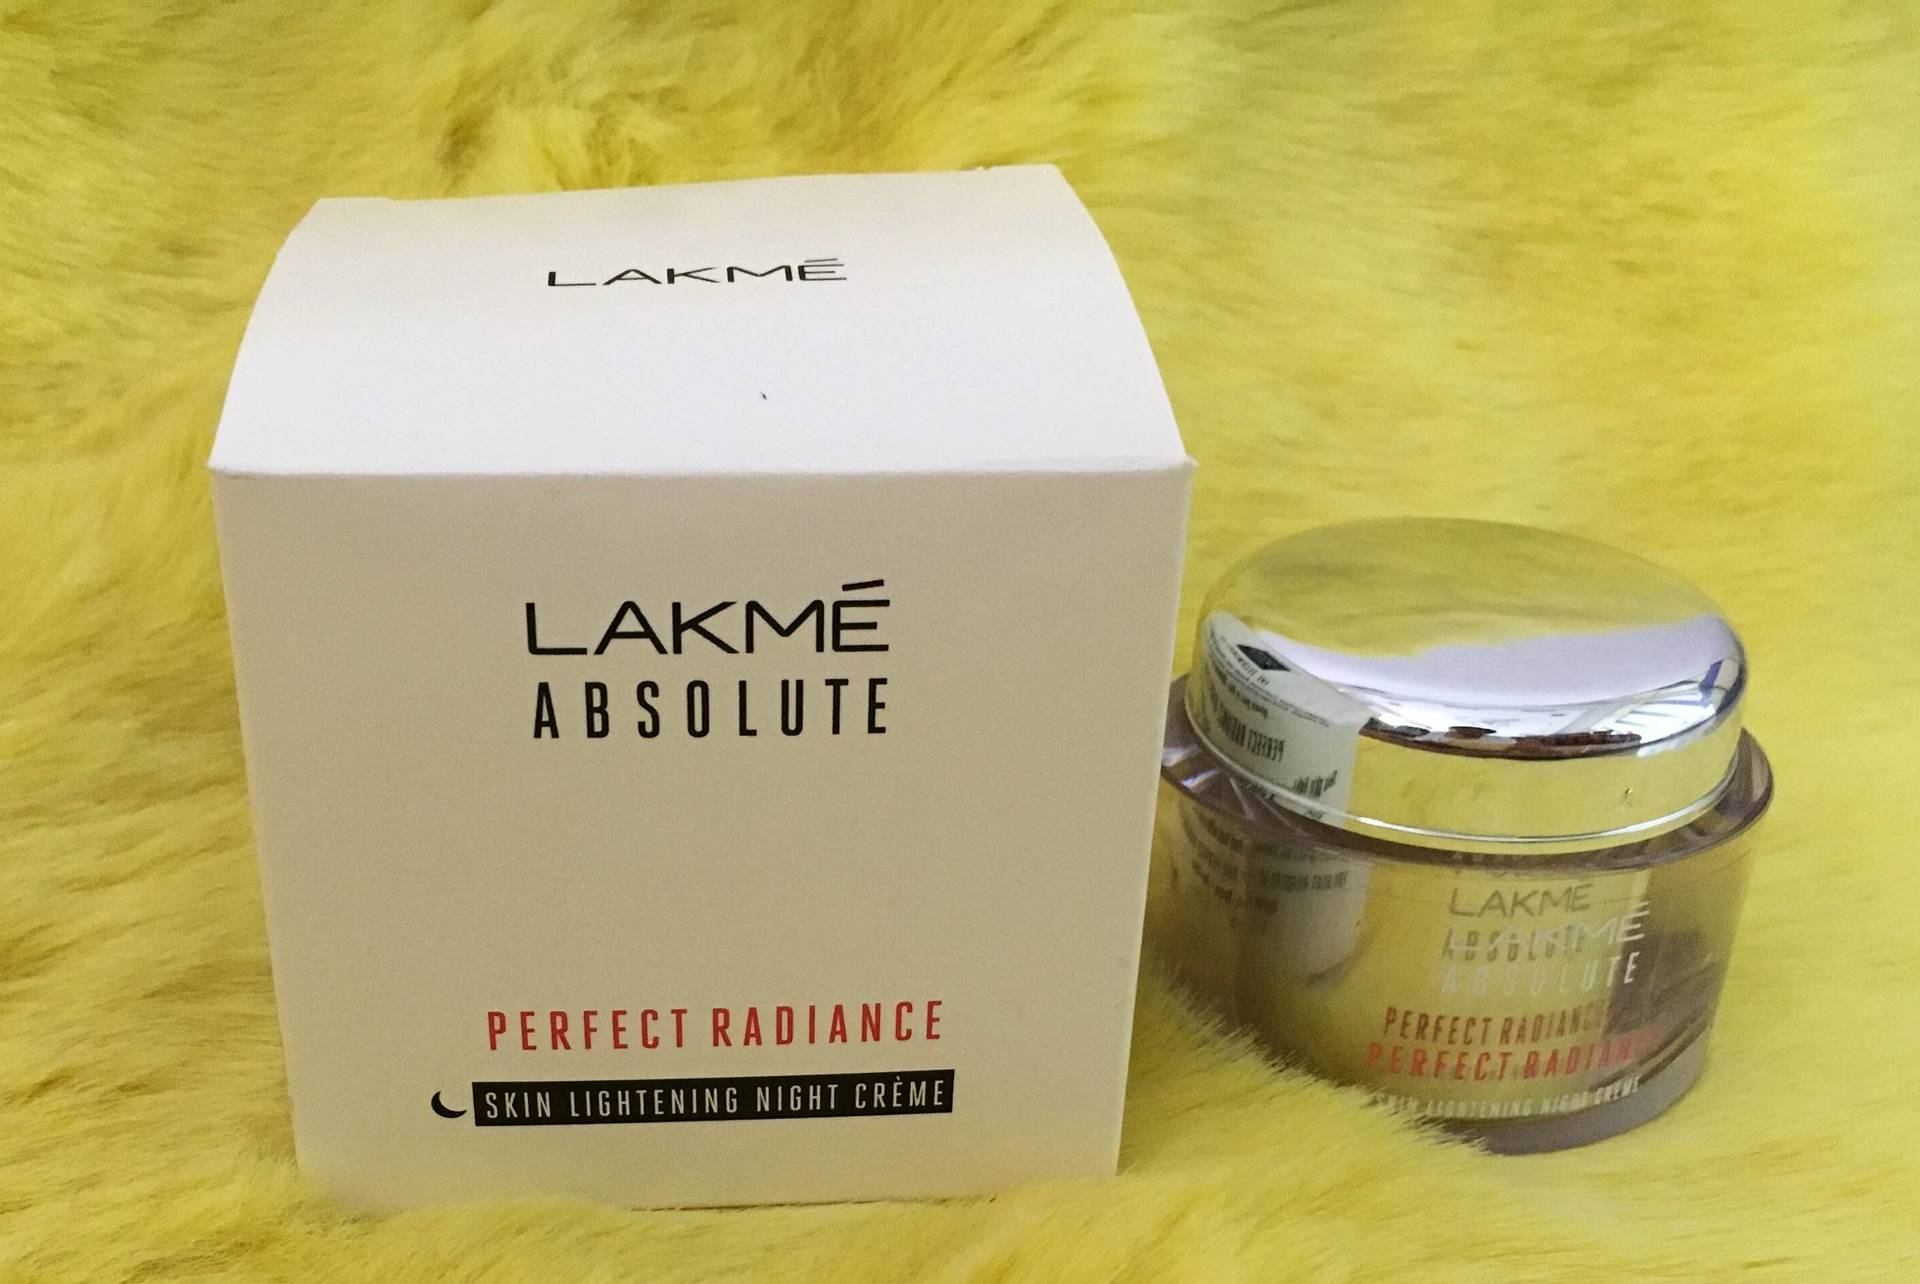 Lakme Absolute  Perfect Radiance Skin Lightening Night Cream: Review, Price  image